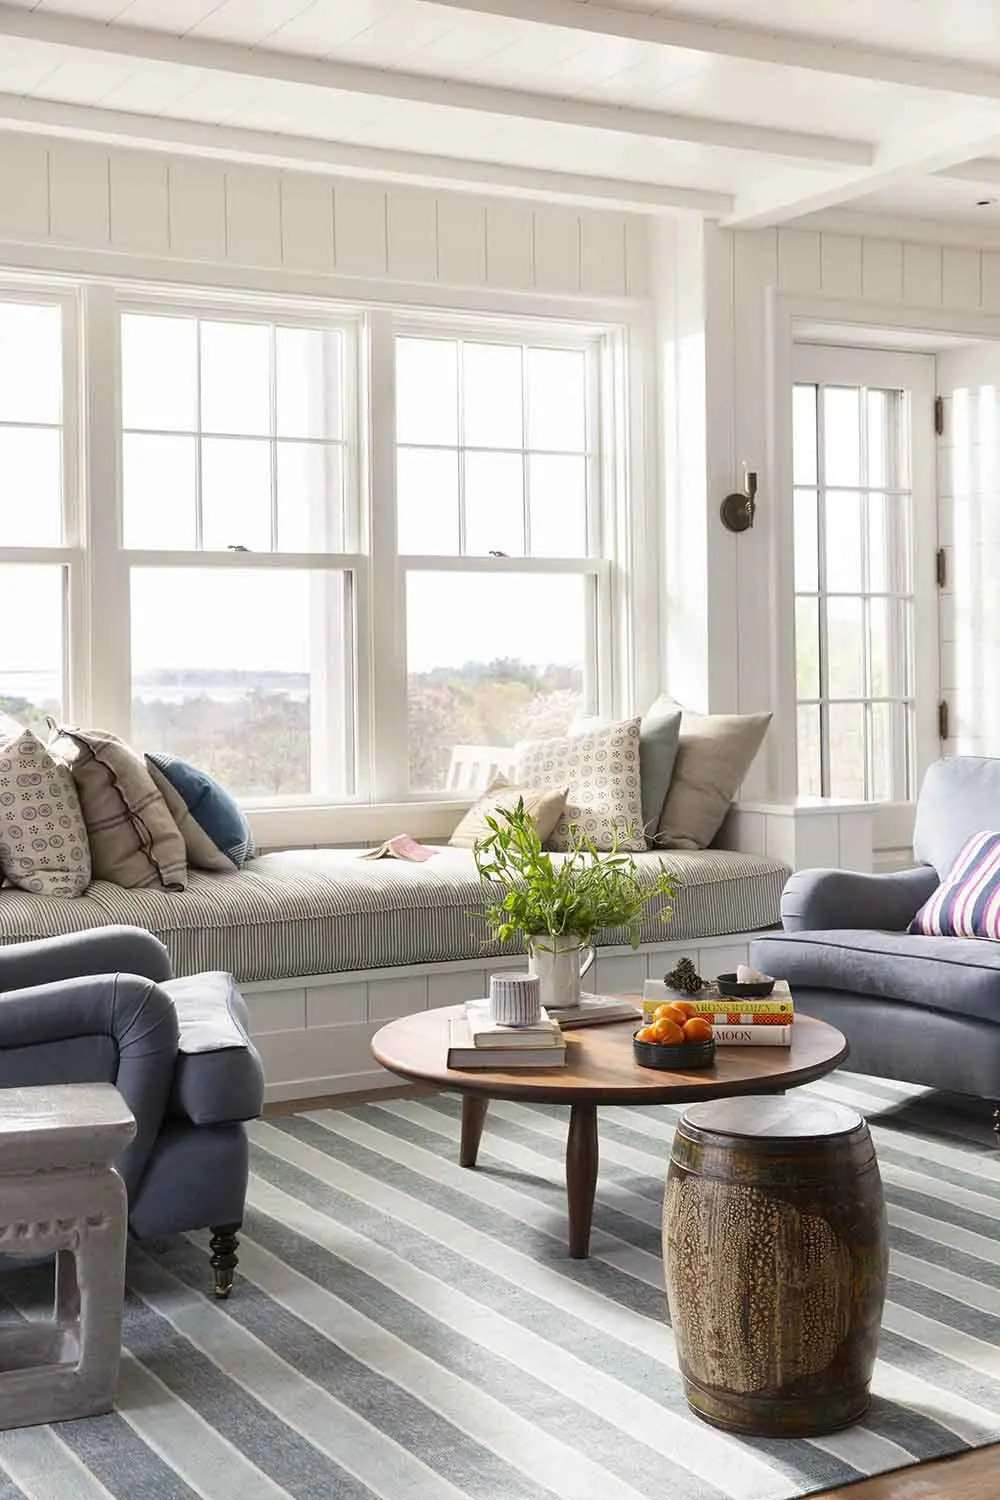 Living room with built-in day bench, round coffee table